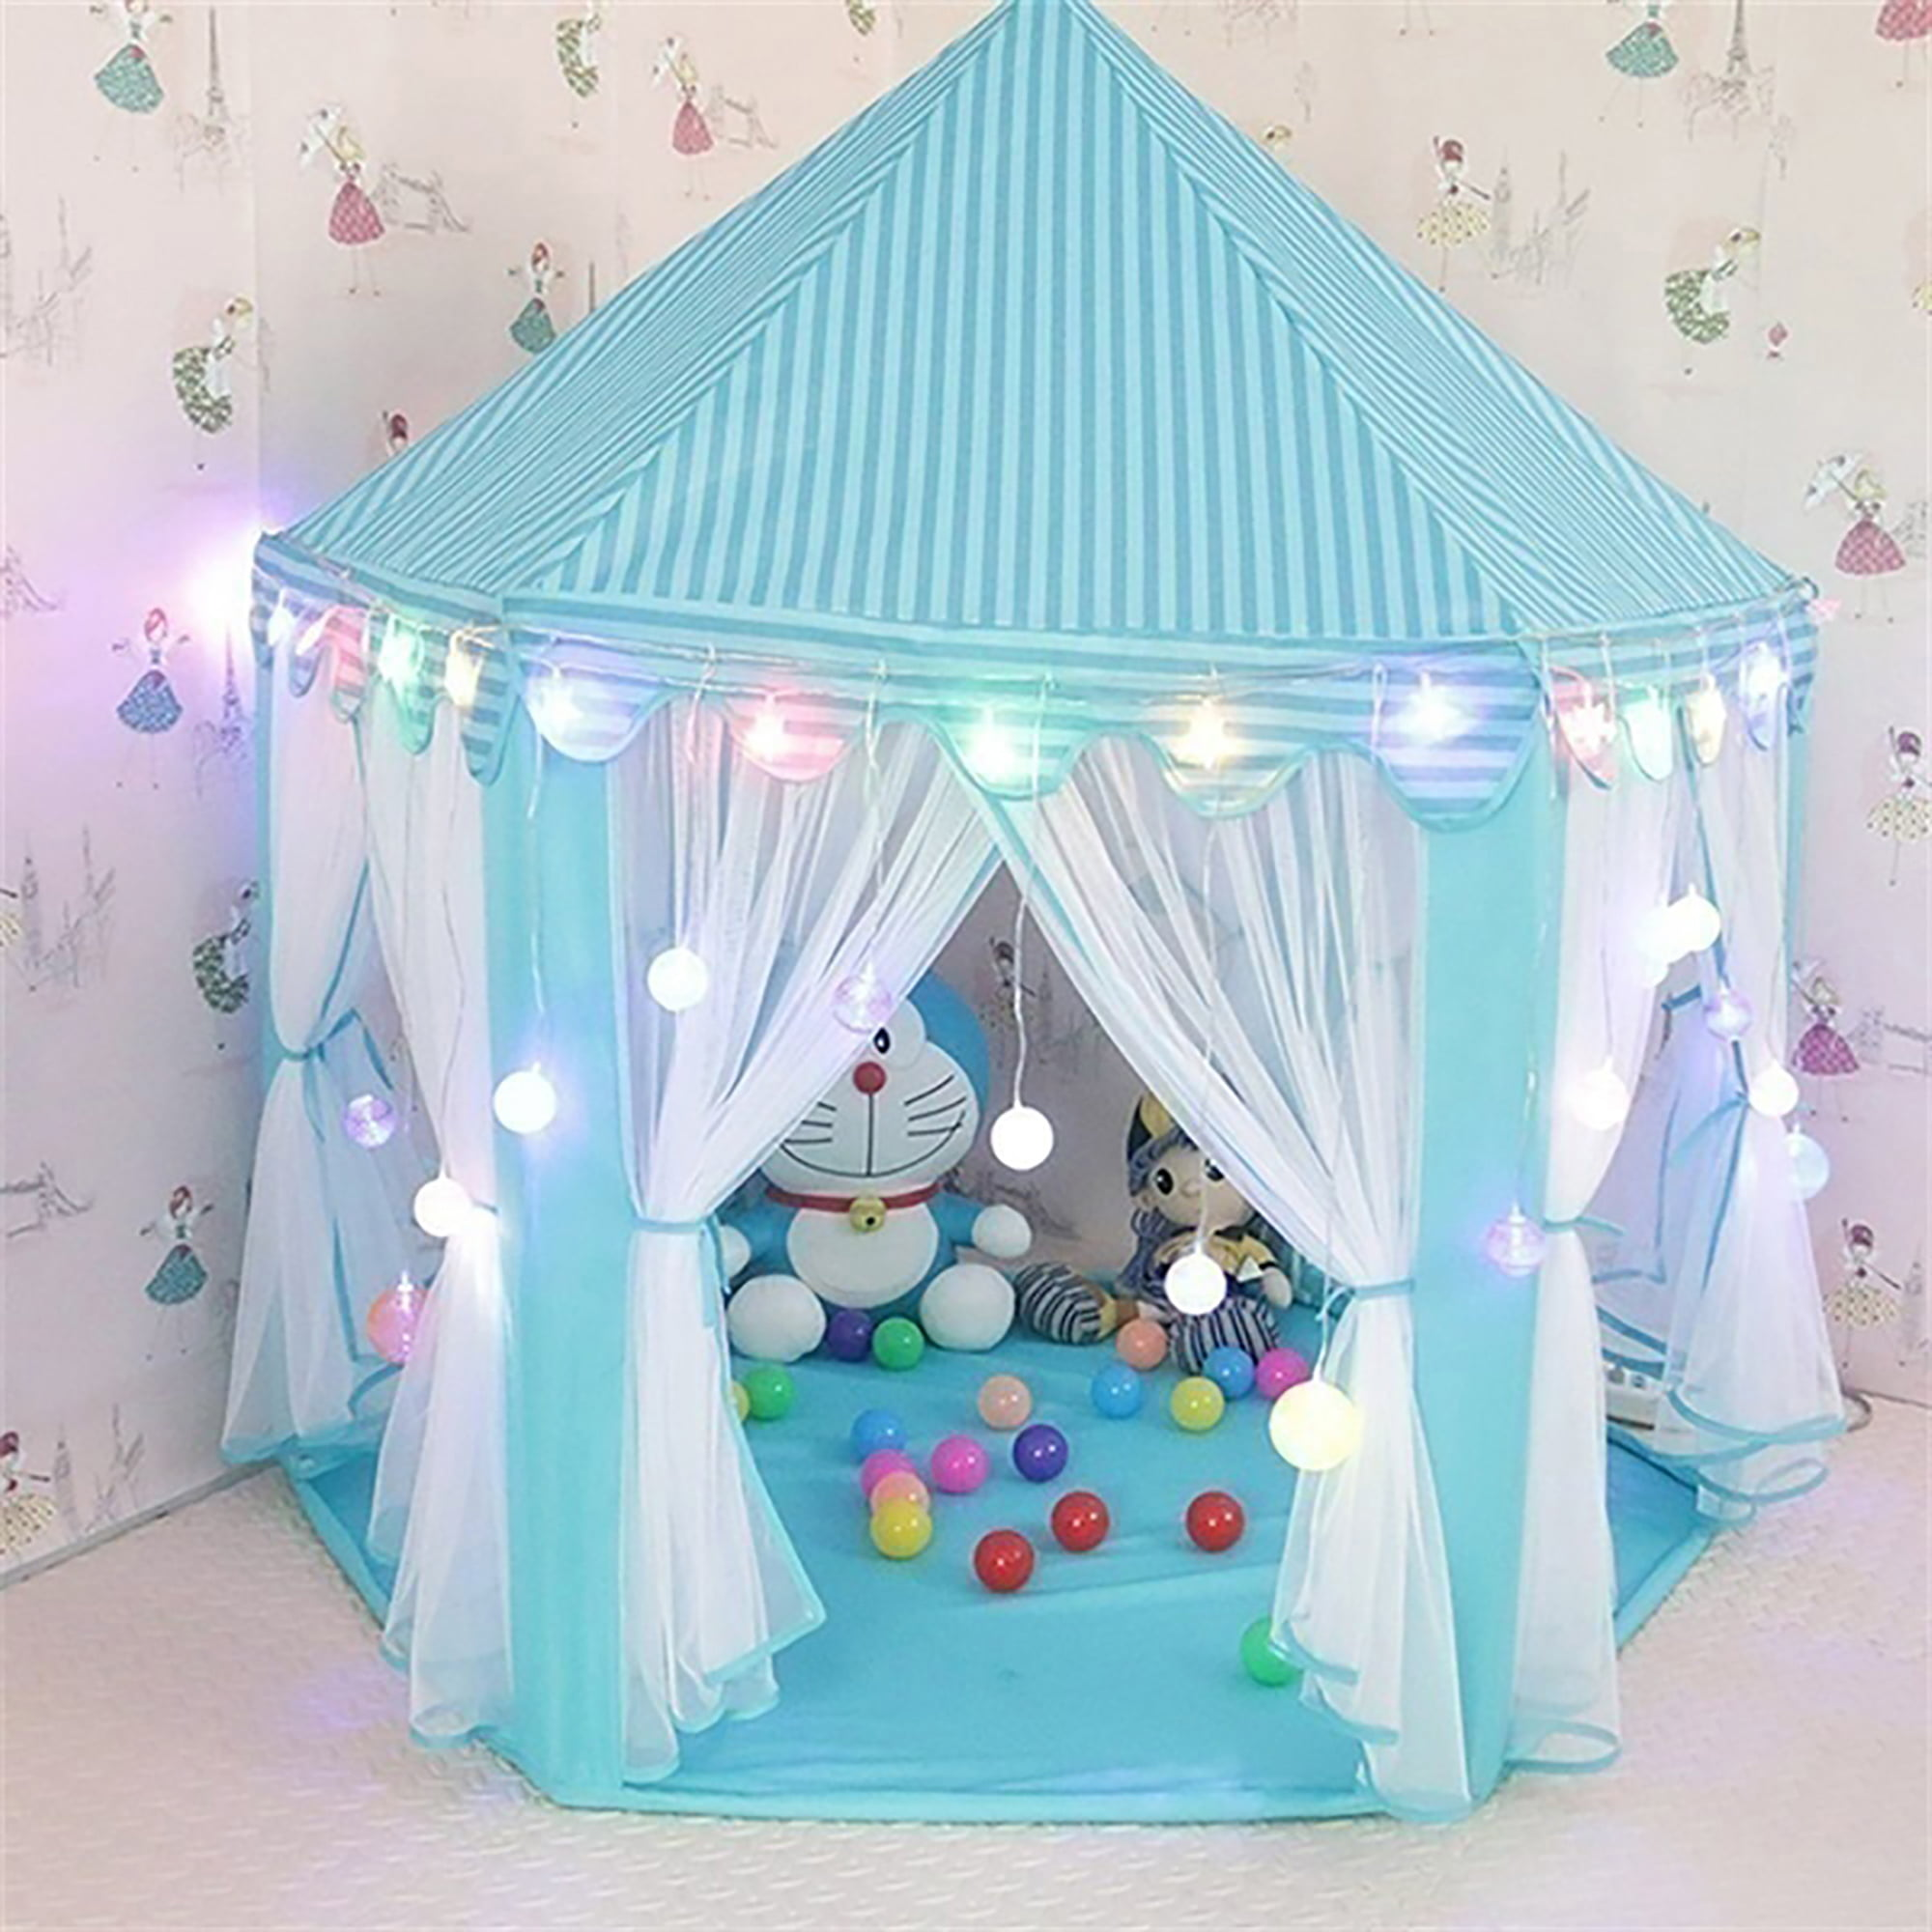 Princess Castle Play House Dome Large Indoor//Outdoor Kids Play Tent Fairy House